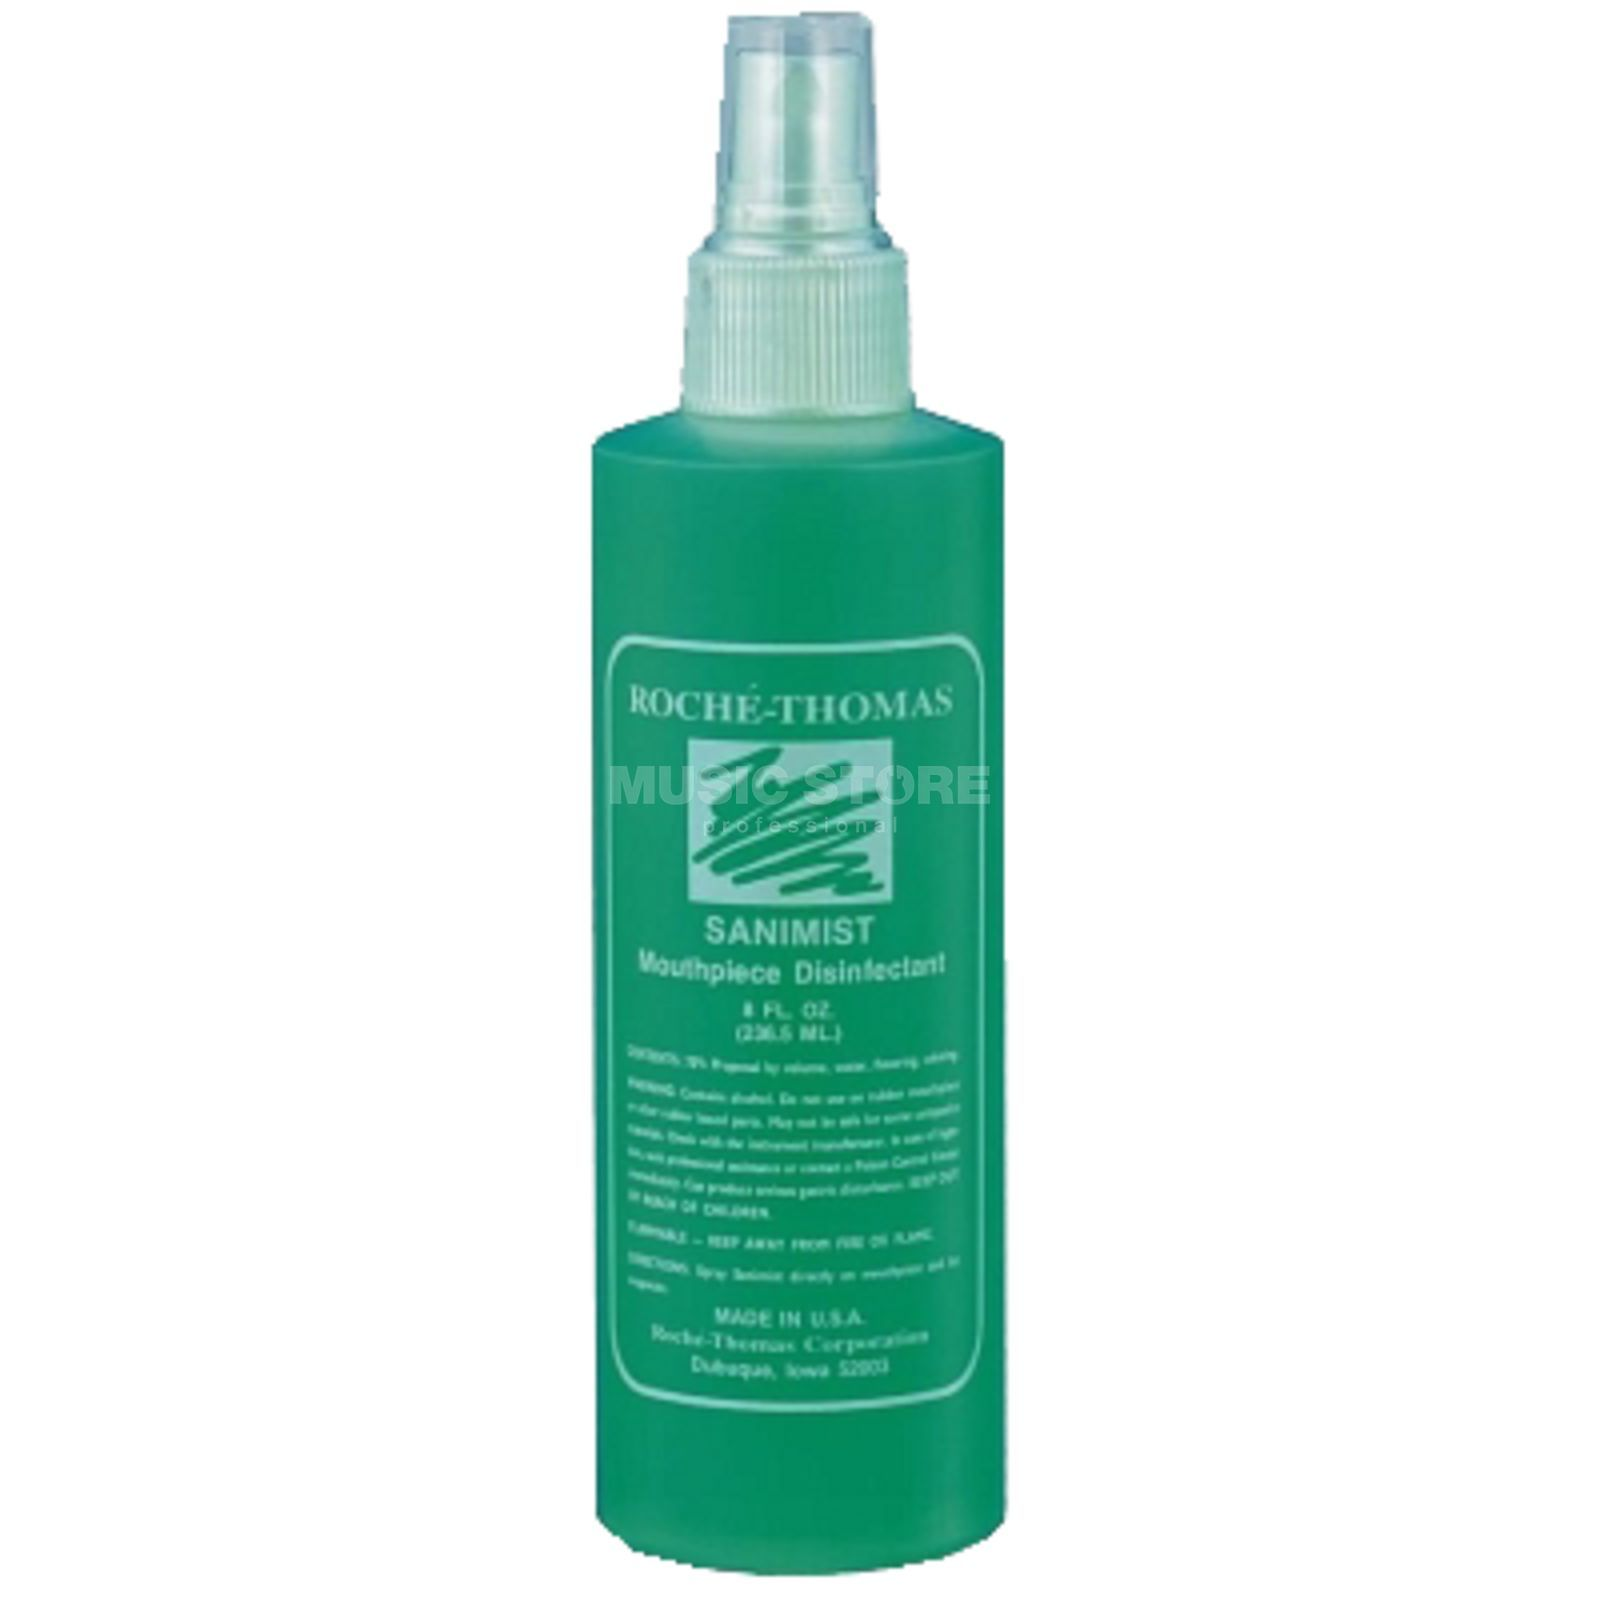 ROCHÉ-THOMAS Cleaning and Disinefectant Spray 235ml (100ml = 5.32Ç) Zdjęcie produktu